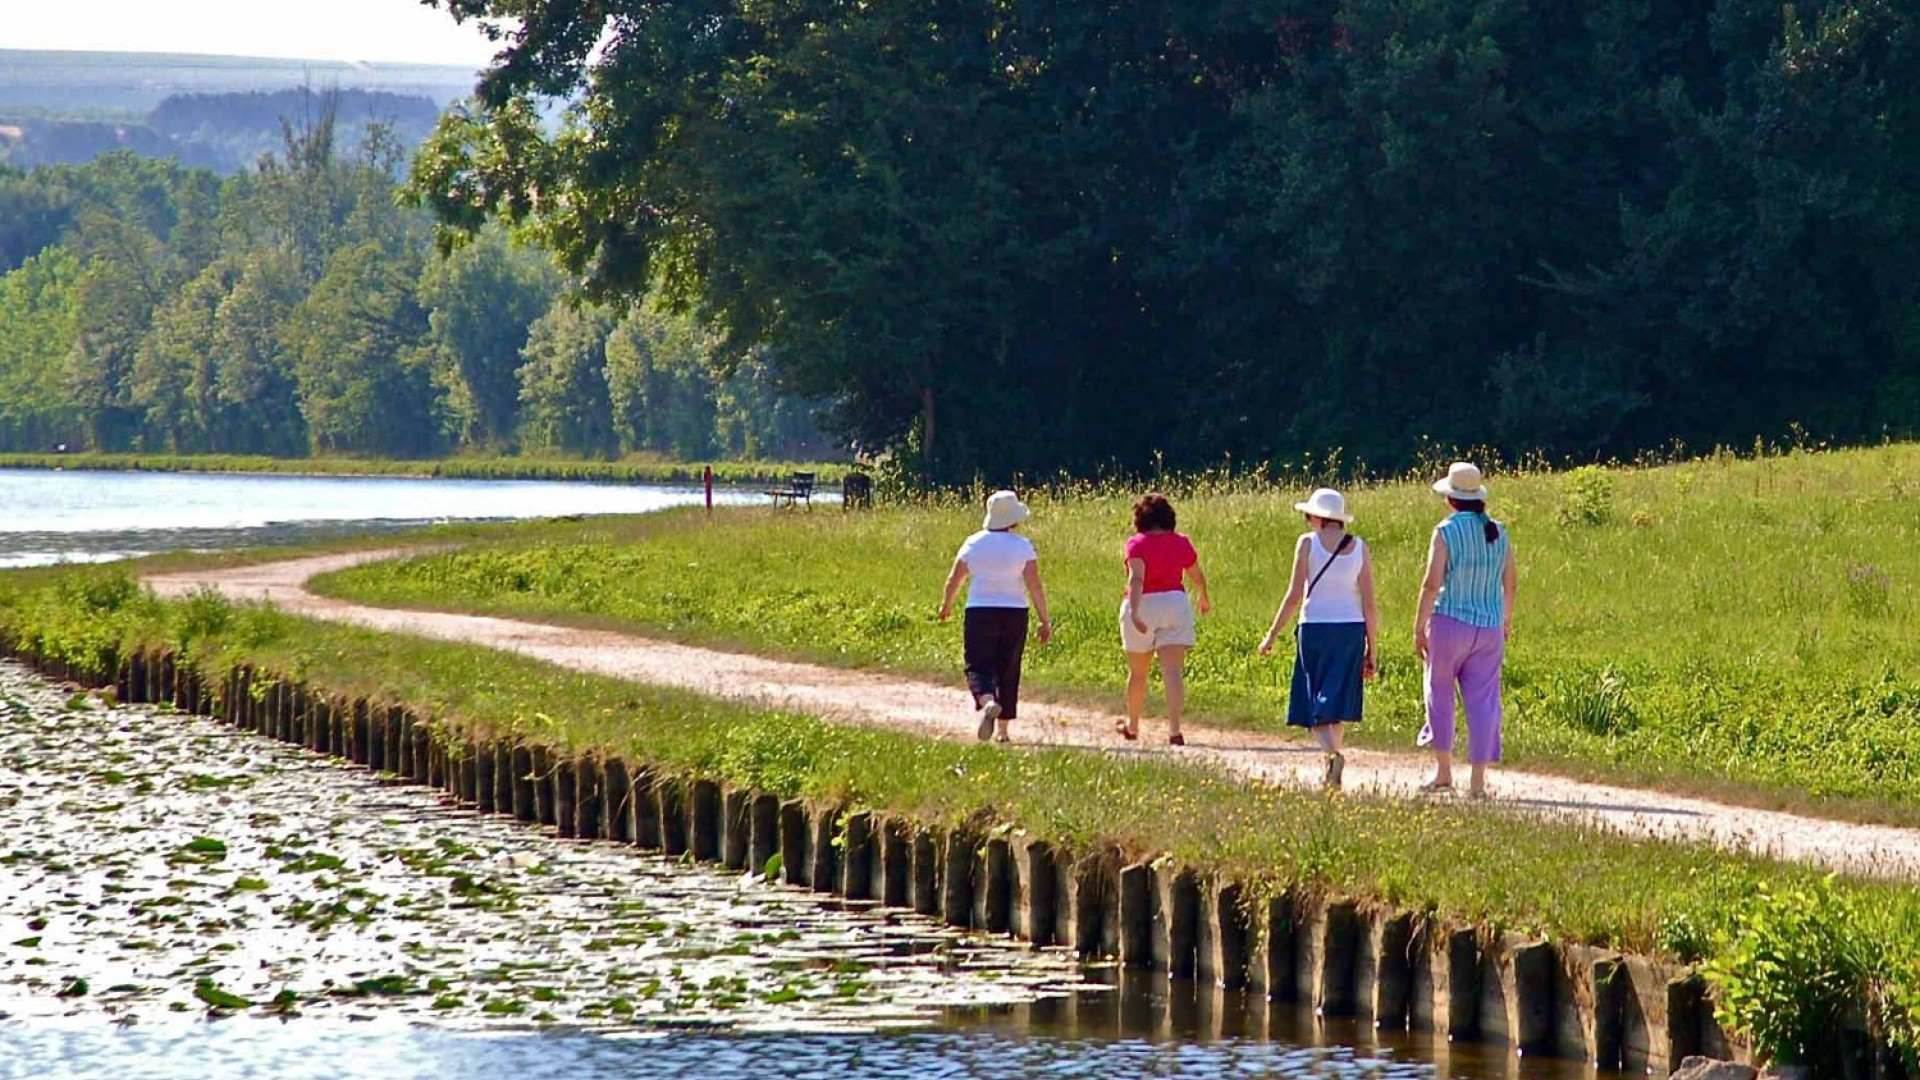 people walking along a French canal